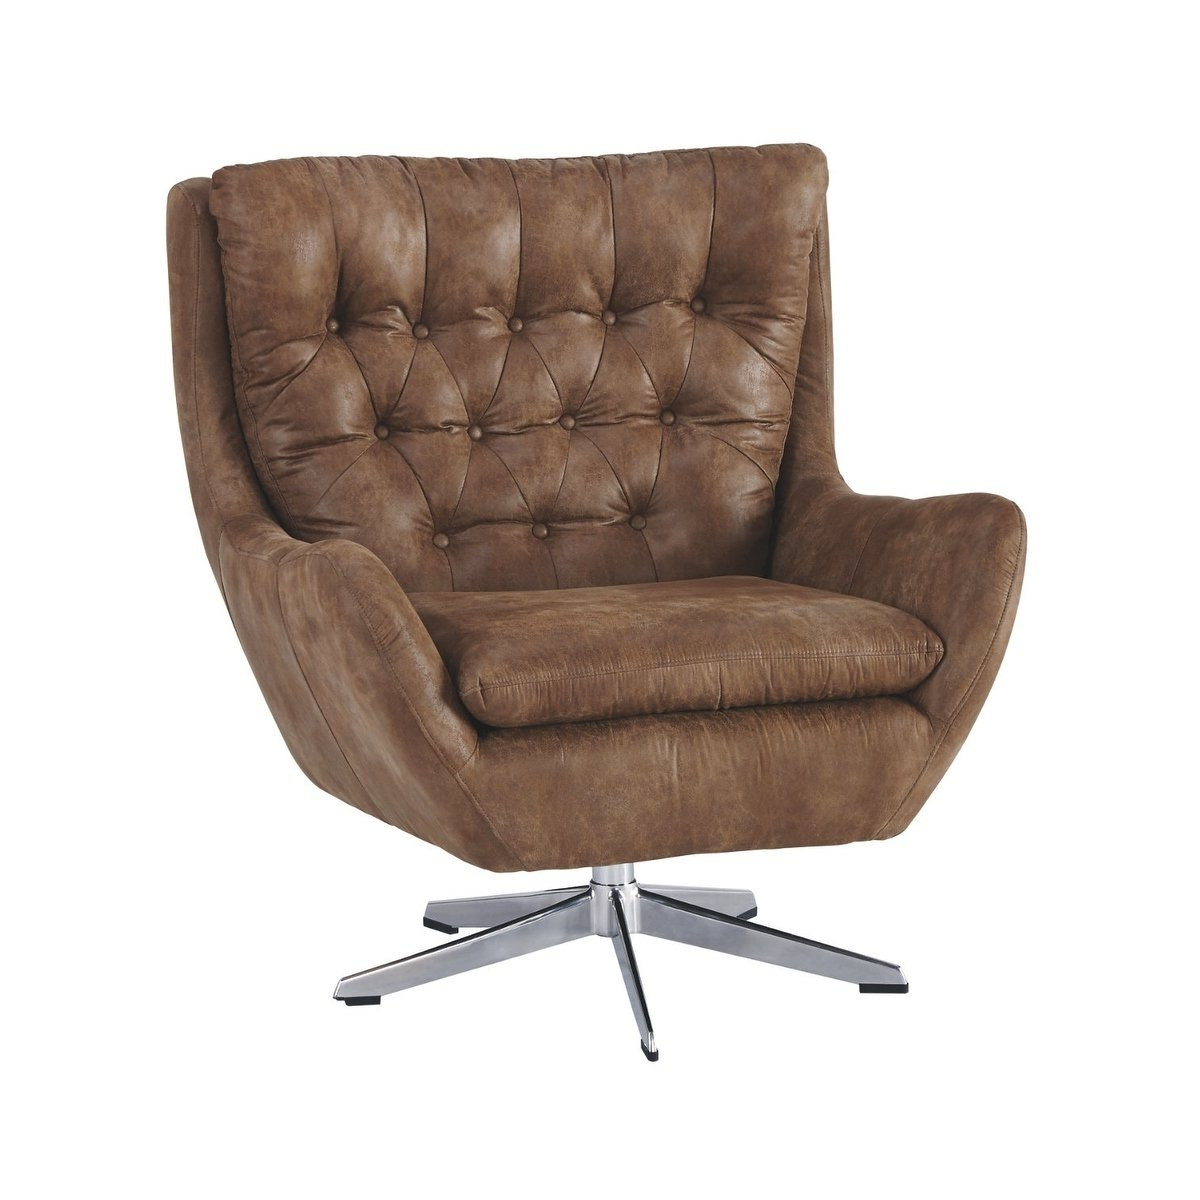 Devon Ii Swivel Accent Chairs Regarding Trendy Shop Signature Designashley Velburg Swivel Accent Chair – Free (View 5 of 20)